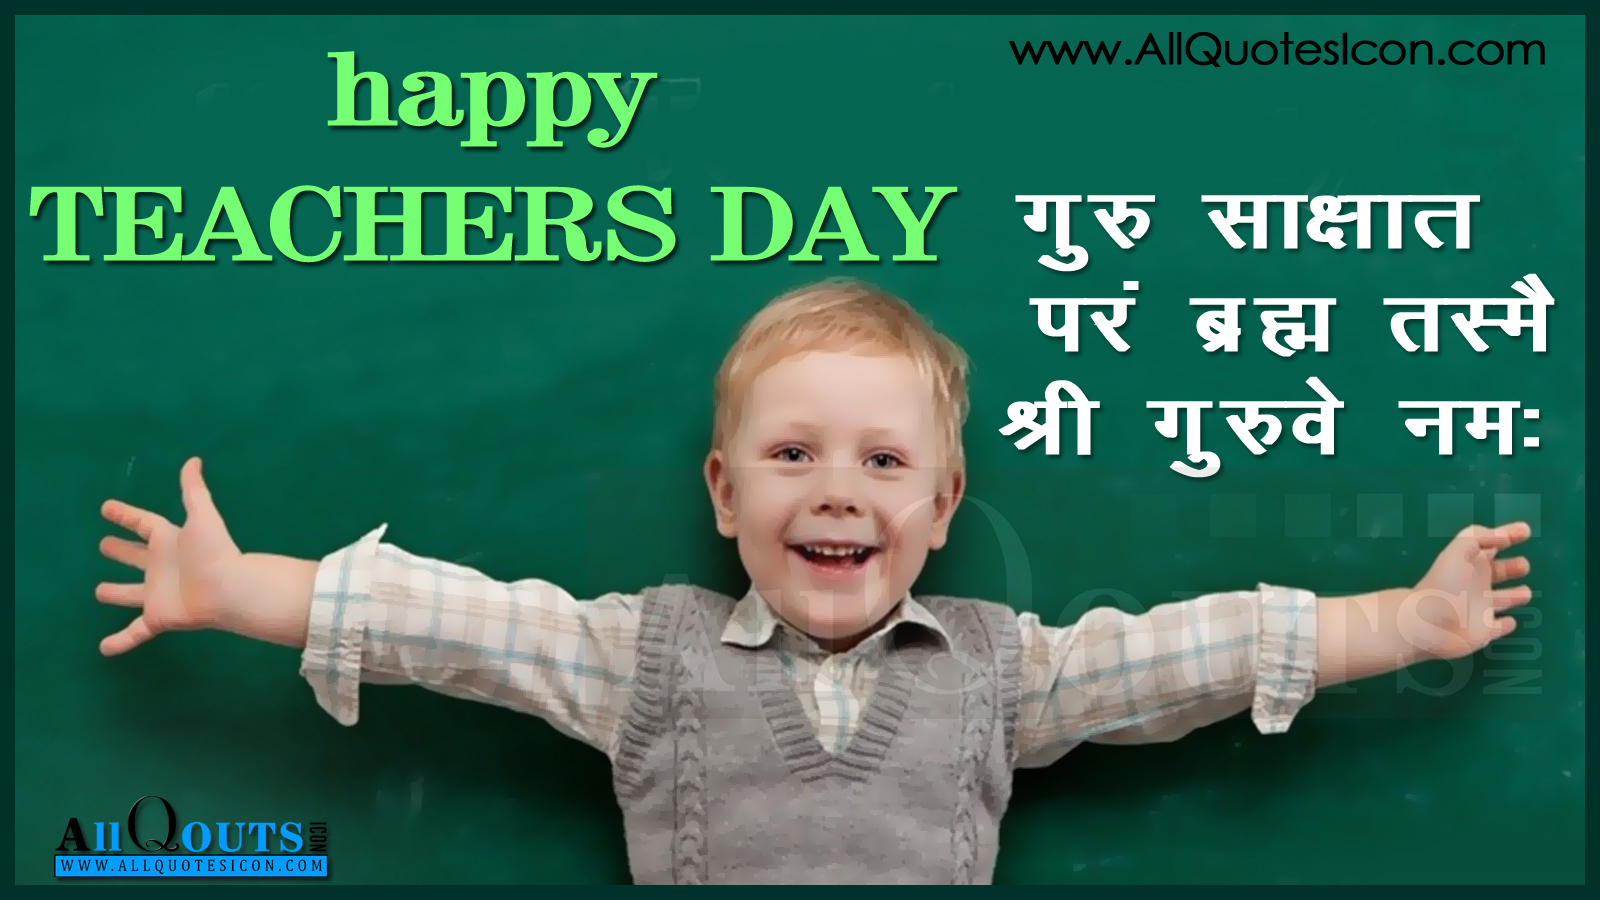 Teachers Day Greetings Hindi Quotes Hd Wallpapers Best Wishes And